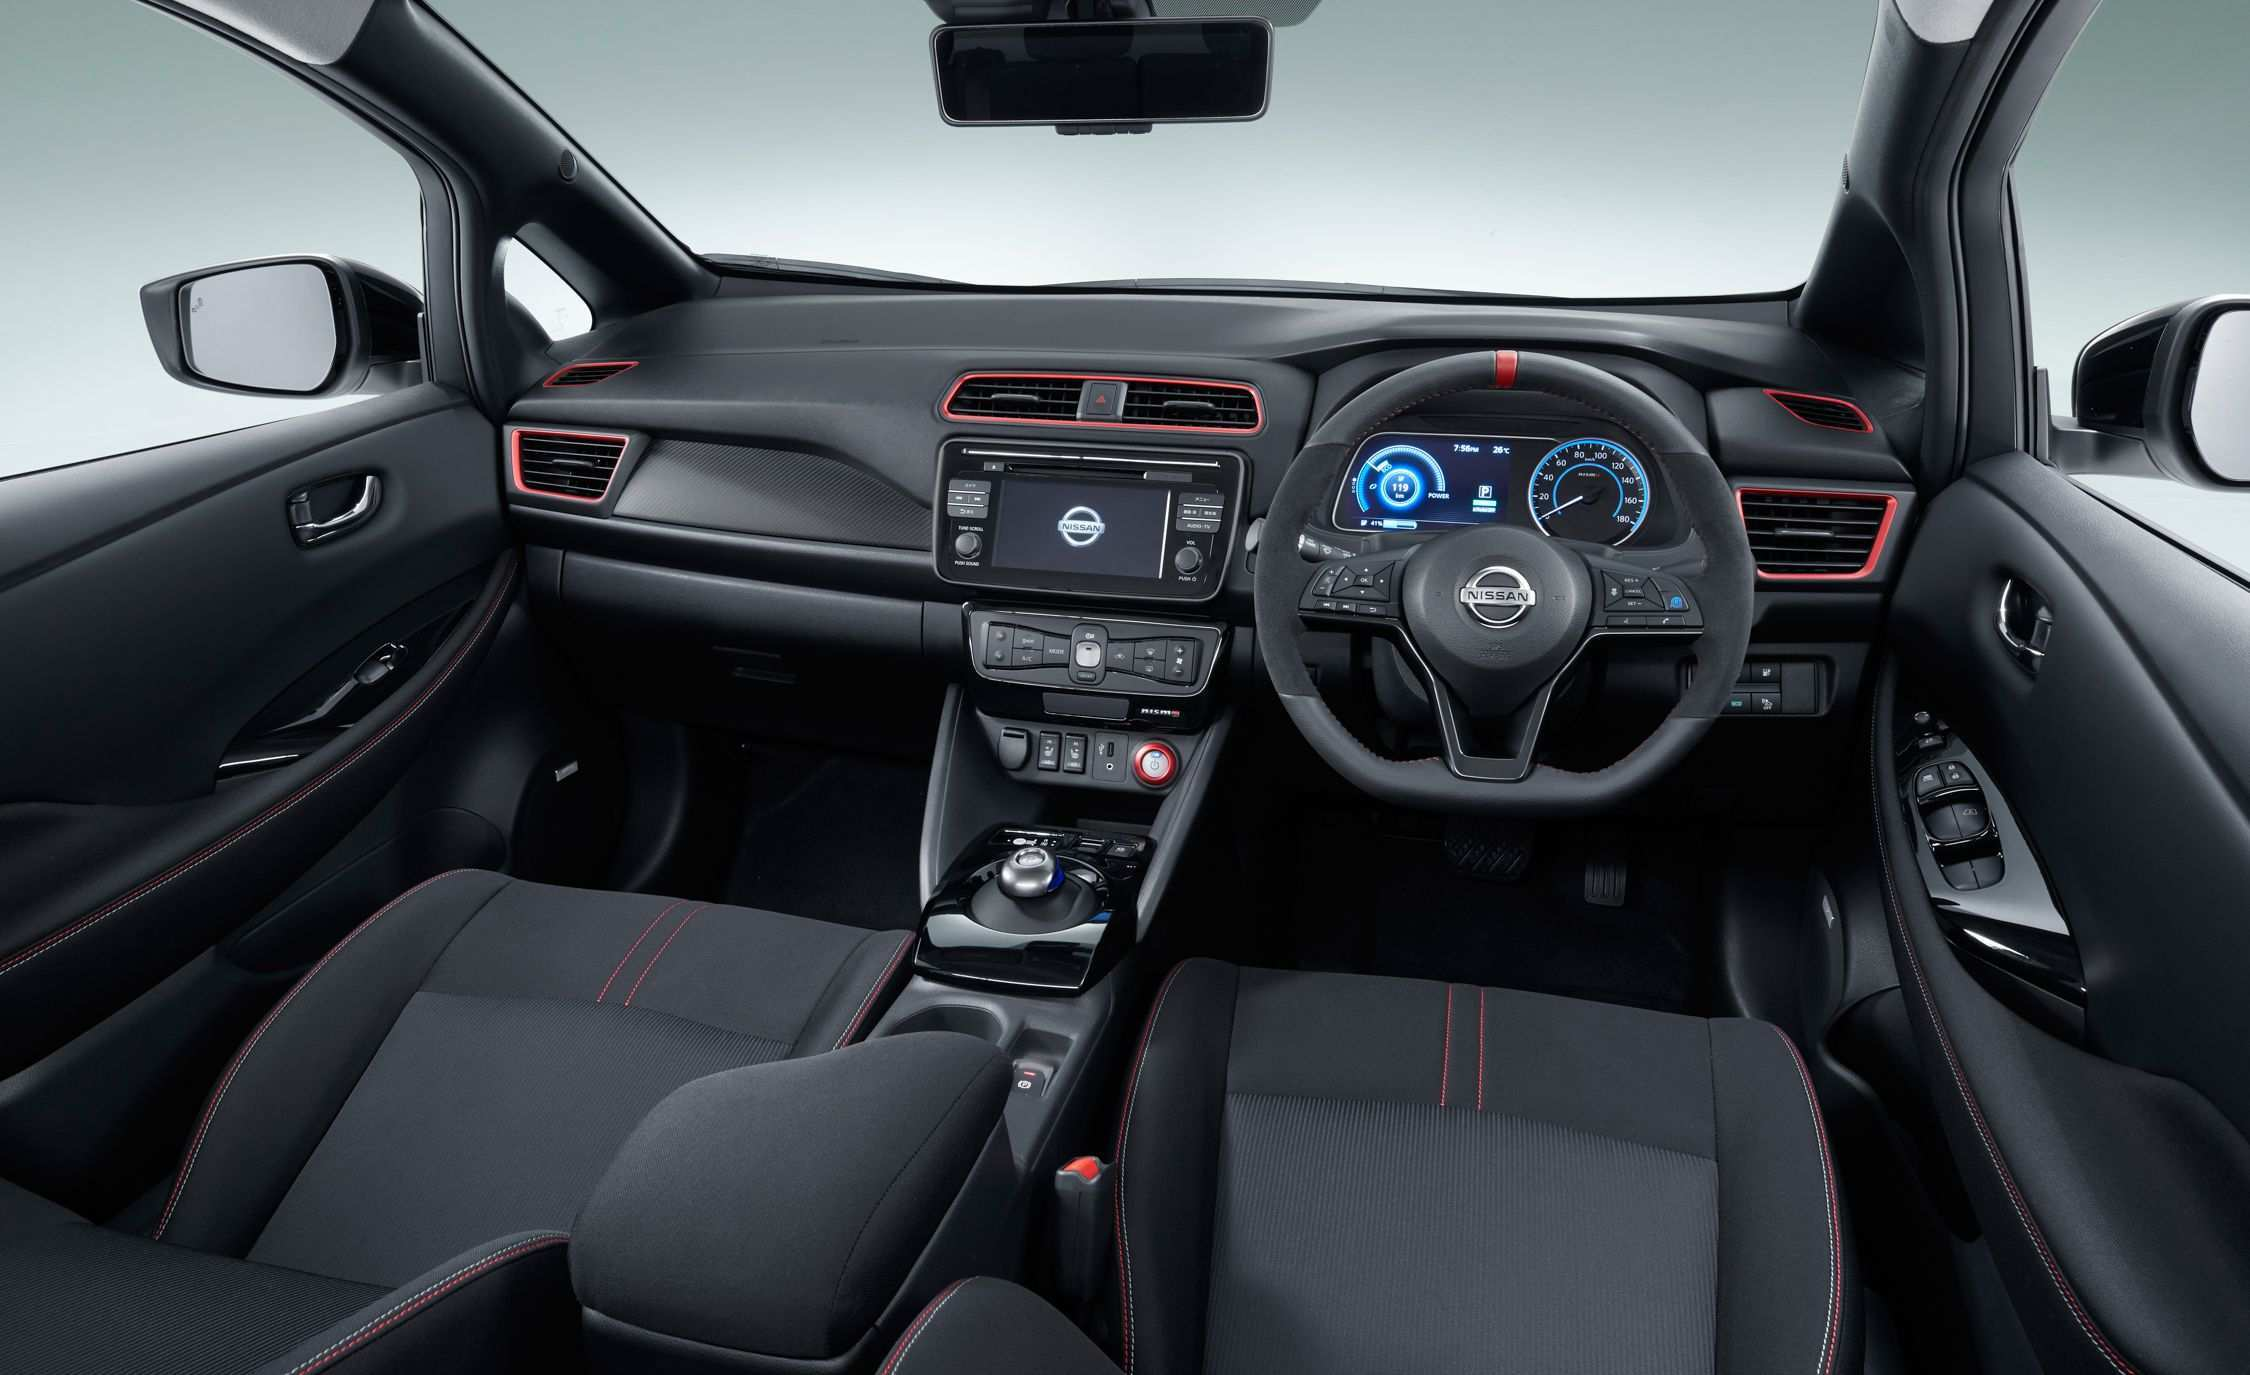 70 All New Nissan Leaf 2020 Interior Review